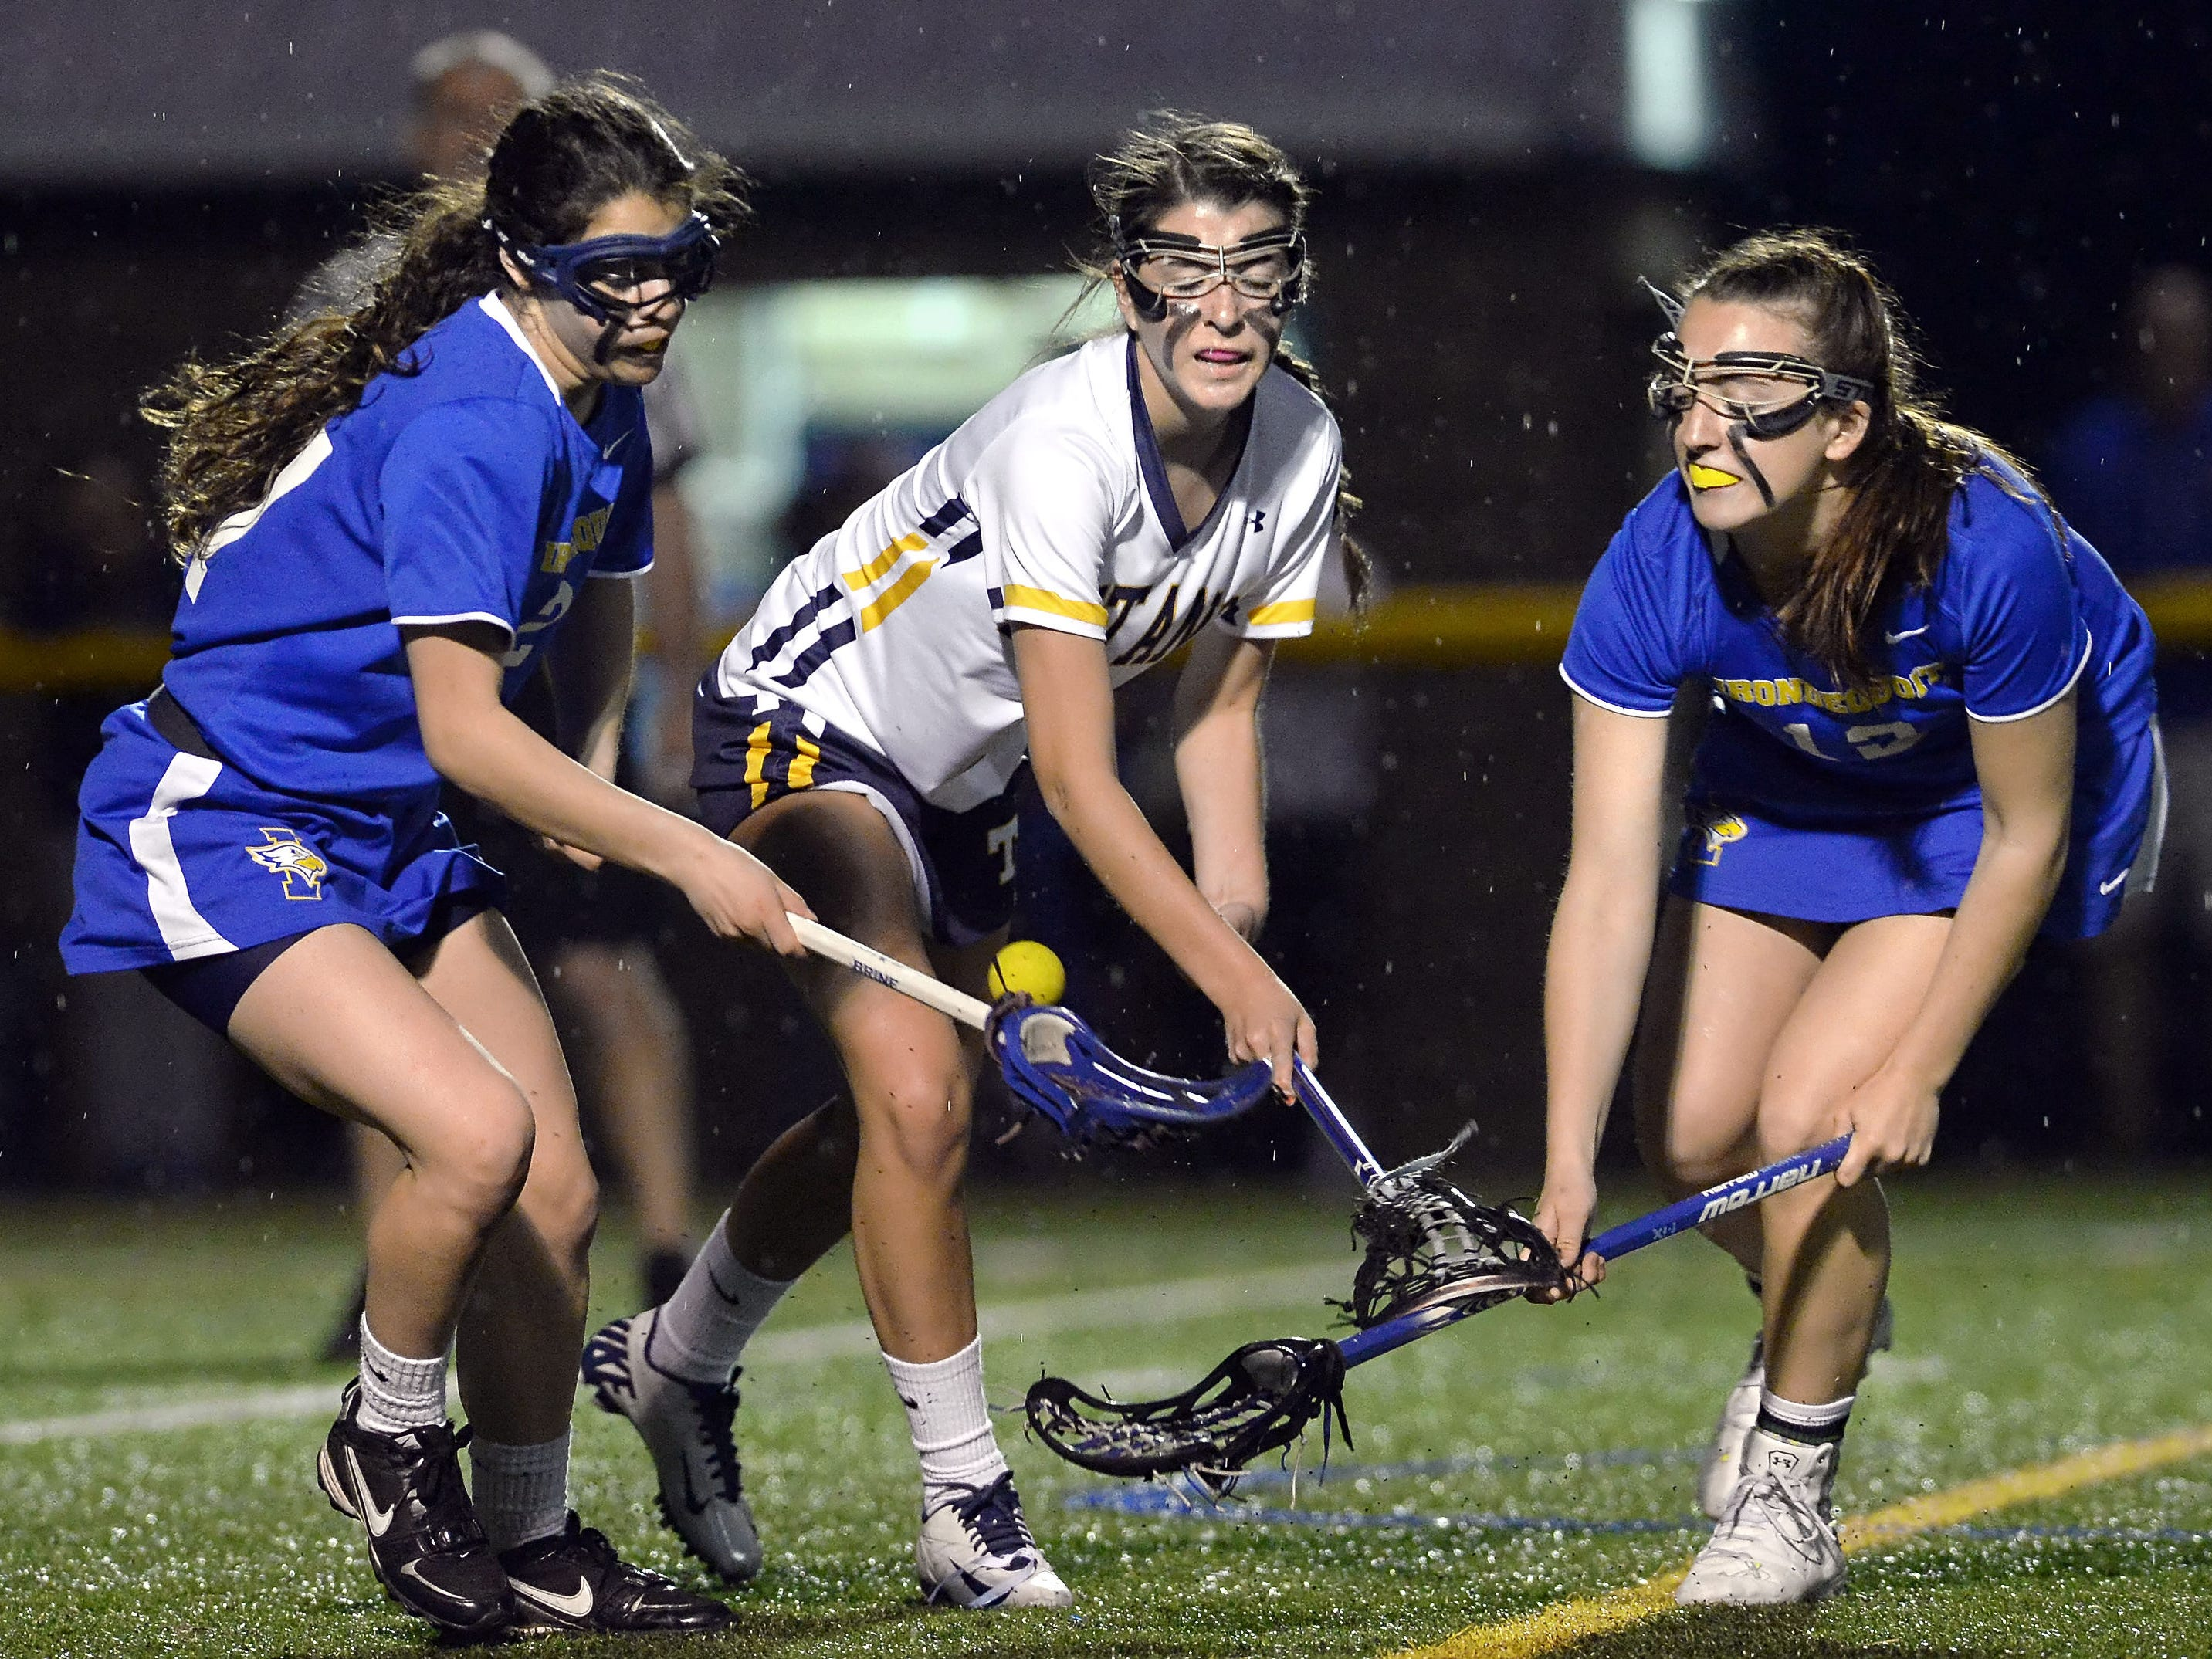 Webster Thomas' Mackenzie Travis, center, fights for the ball against Irondequoit's Jamie Rogers, left, and Ari Torpey.